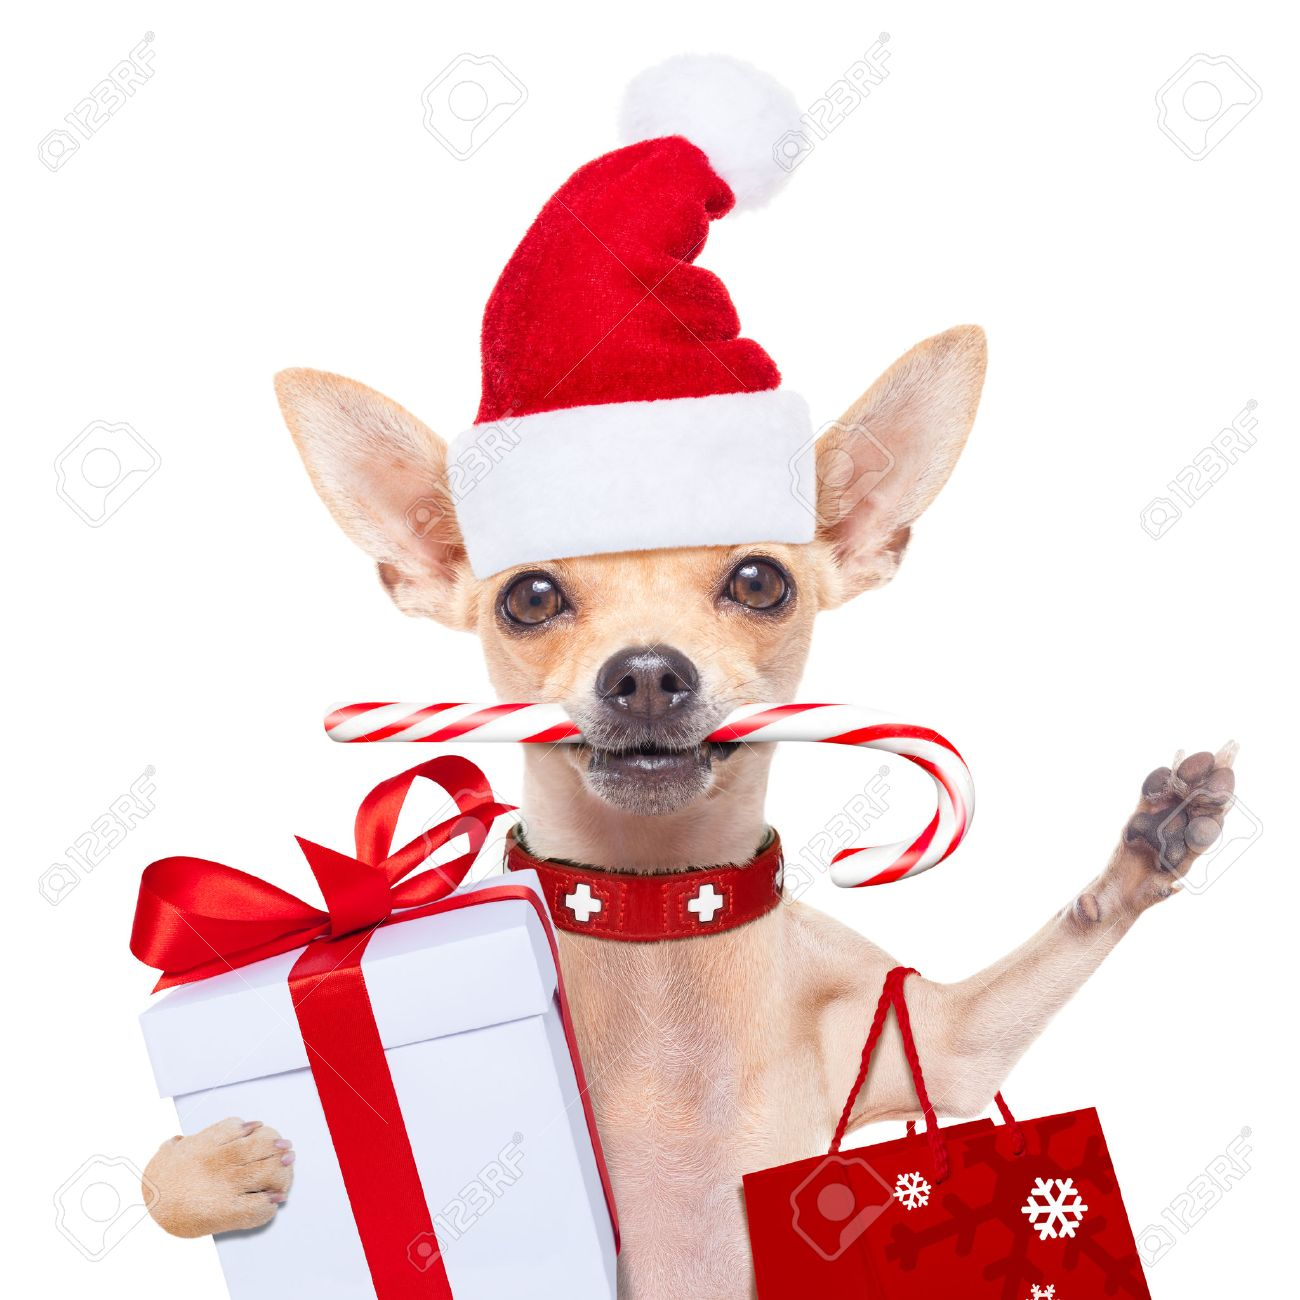 chihuahua santa claus shopping bag  dog  ready for christmas sale  , isolated on white background Stock Photo - 46809753